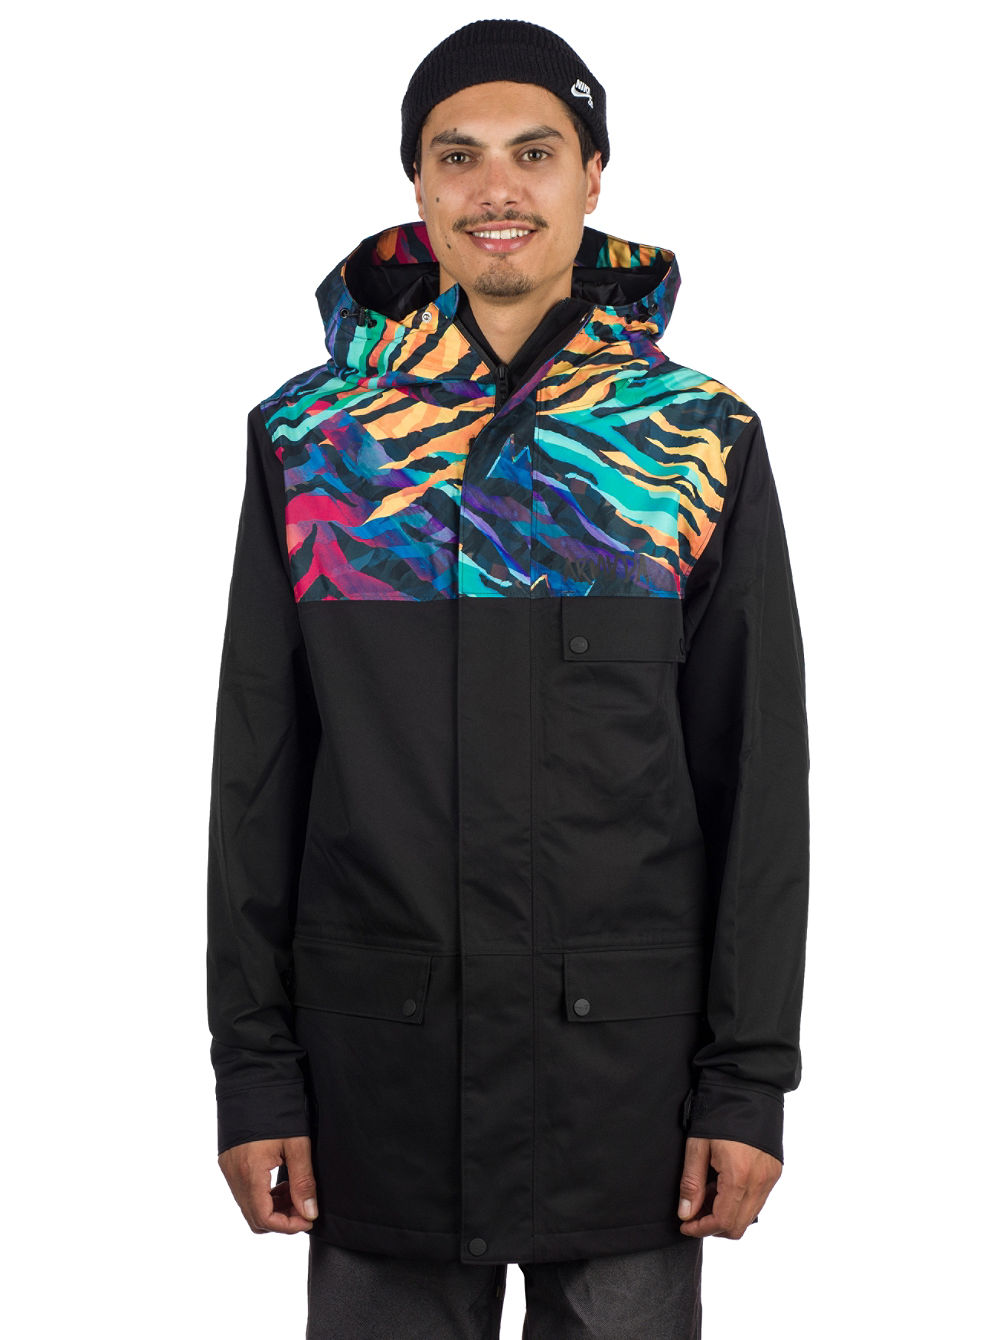 Emmett SMU Insulated Jacke